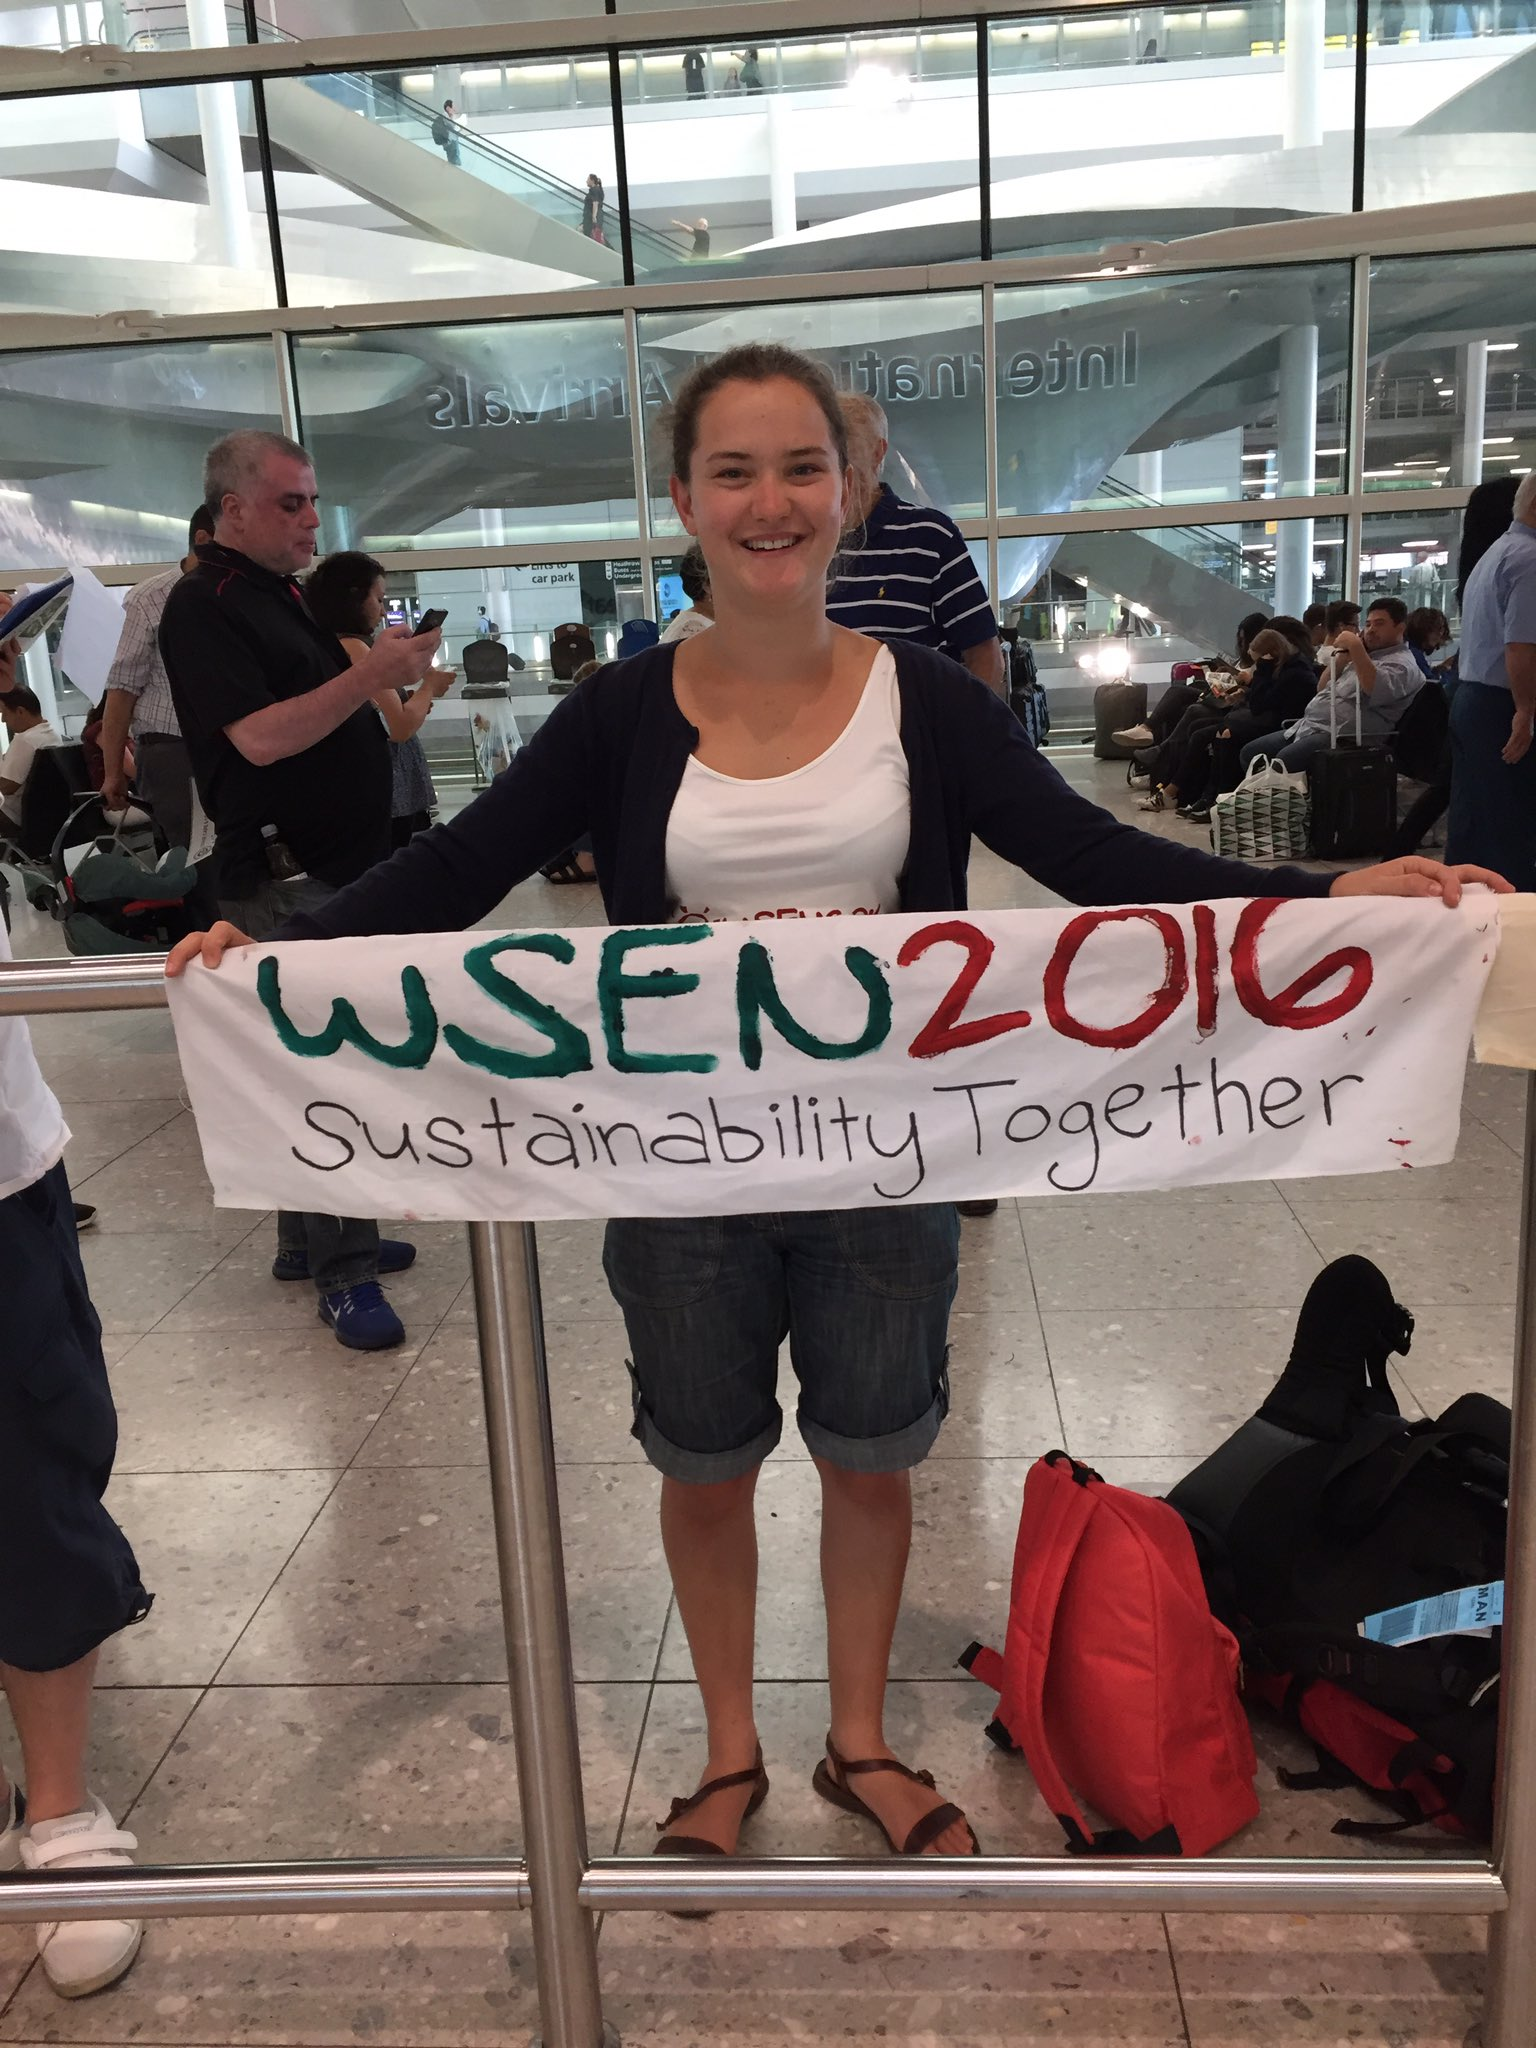 Brechje waiting to welcome some more delegates for #WSEN2016 #SustainabilityTogether https://t.co/GCFncgEu72